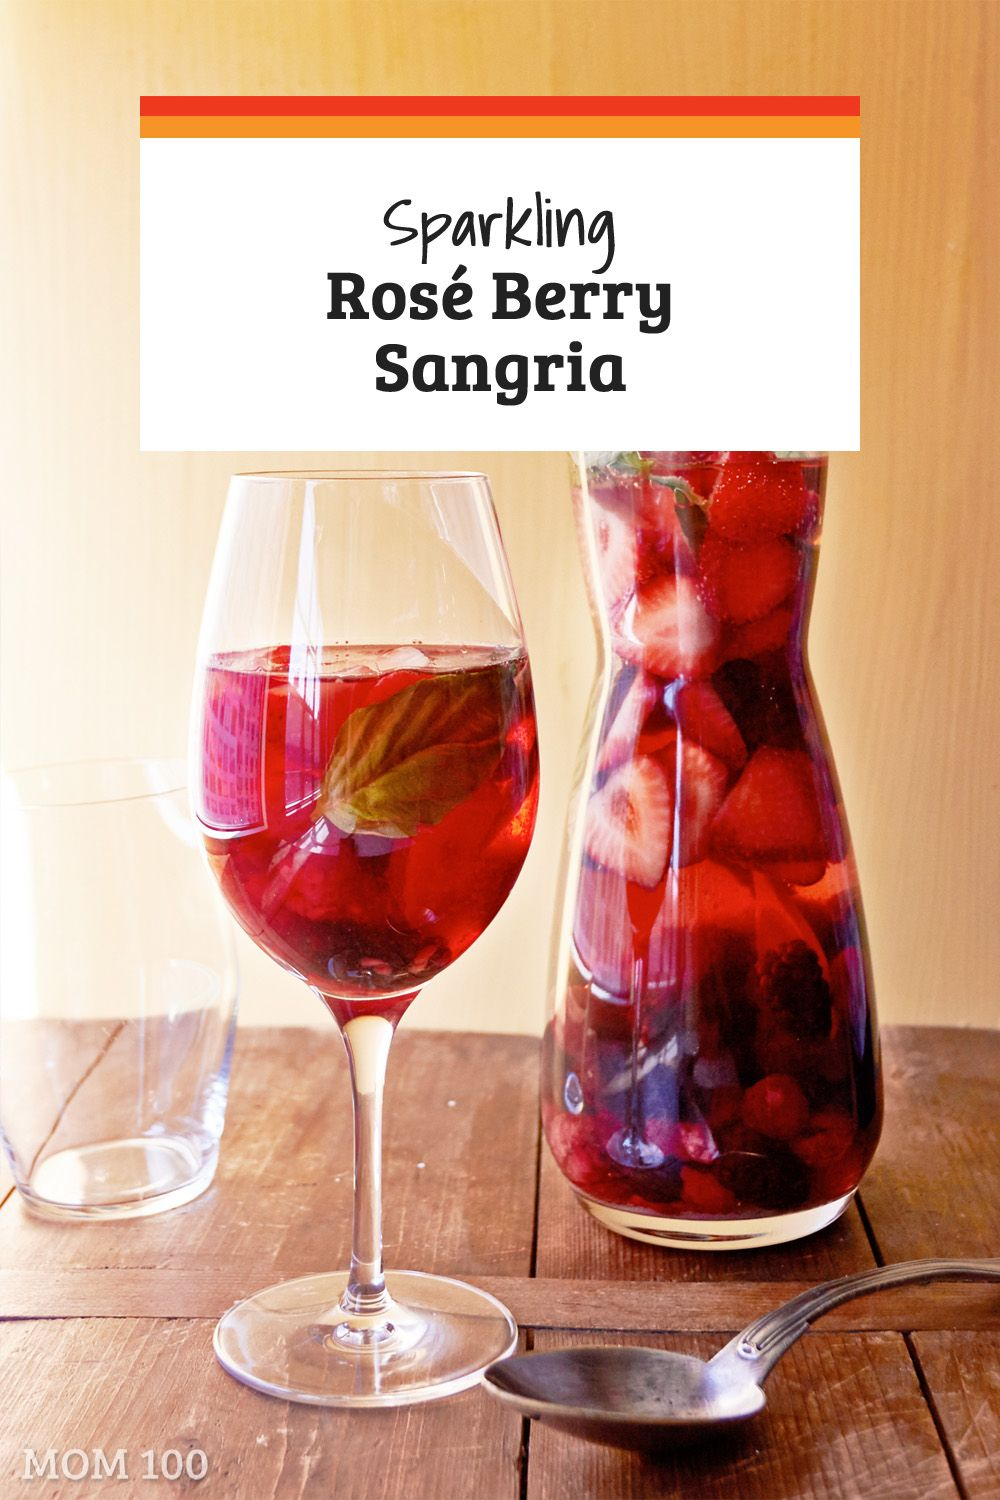 Sparkling Rose Berry Sangria Stunningly Beautiful Fruity And A Delightful Pitcher Drink For Summer E Berry Sangria White Wine Sangria Recipe Fruit Cocktails